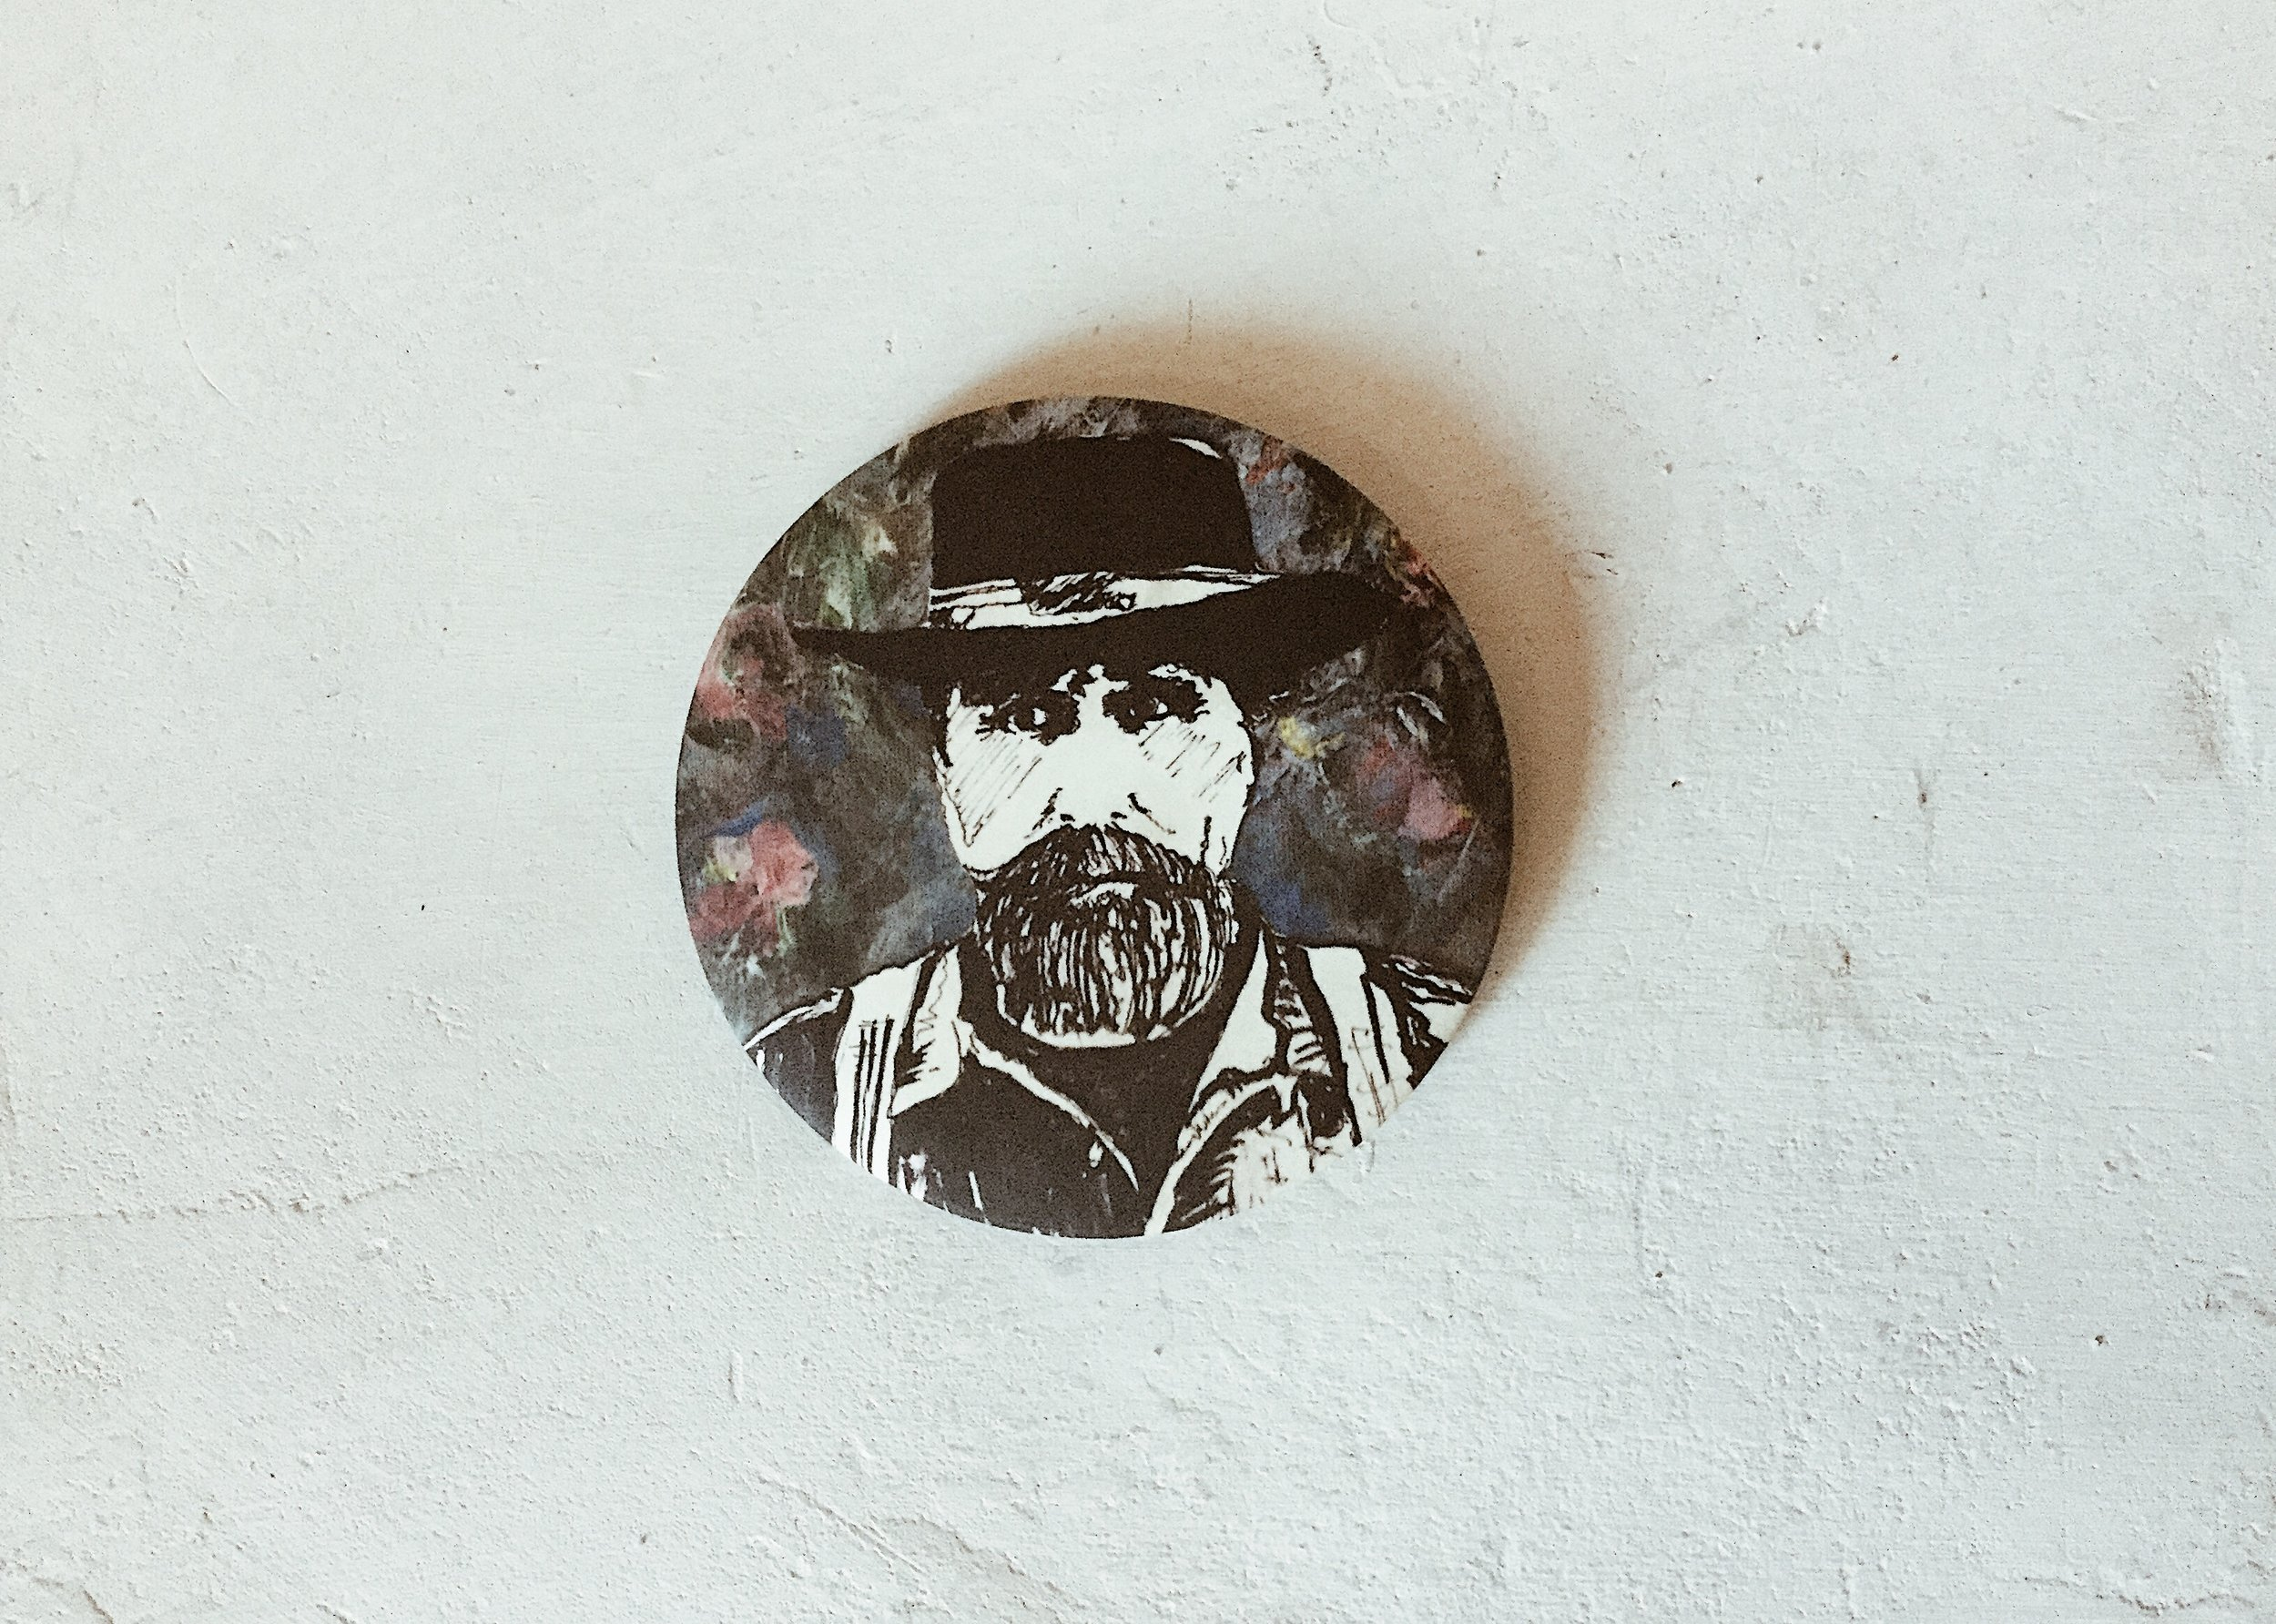 PINS & STICKERS - Artwork of Alie's Dad created by Alie's Mom